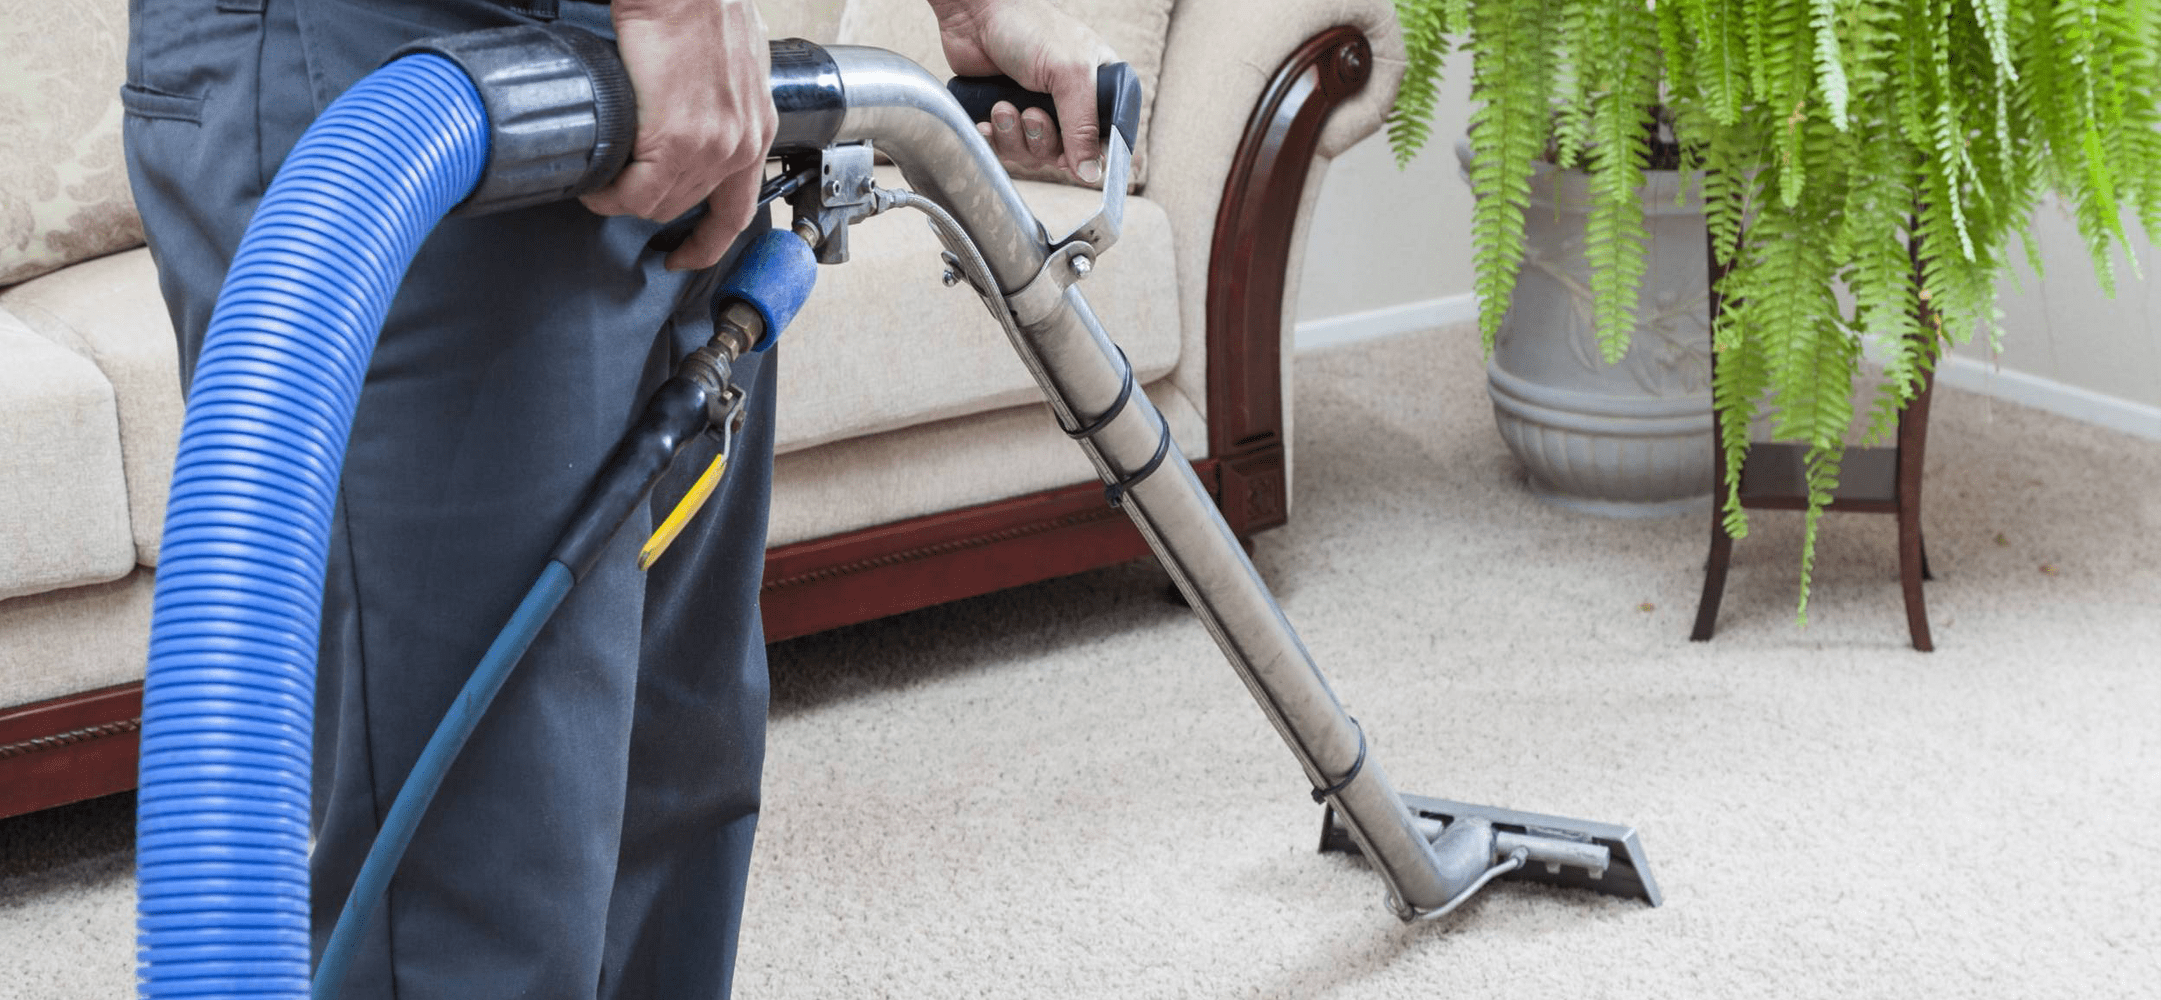 Istock Carpet Cleaning